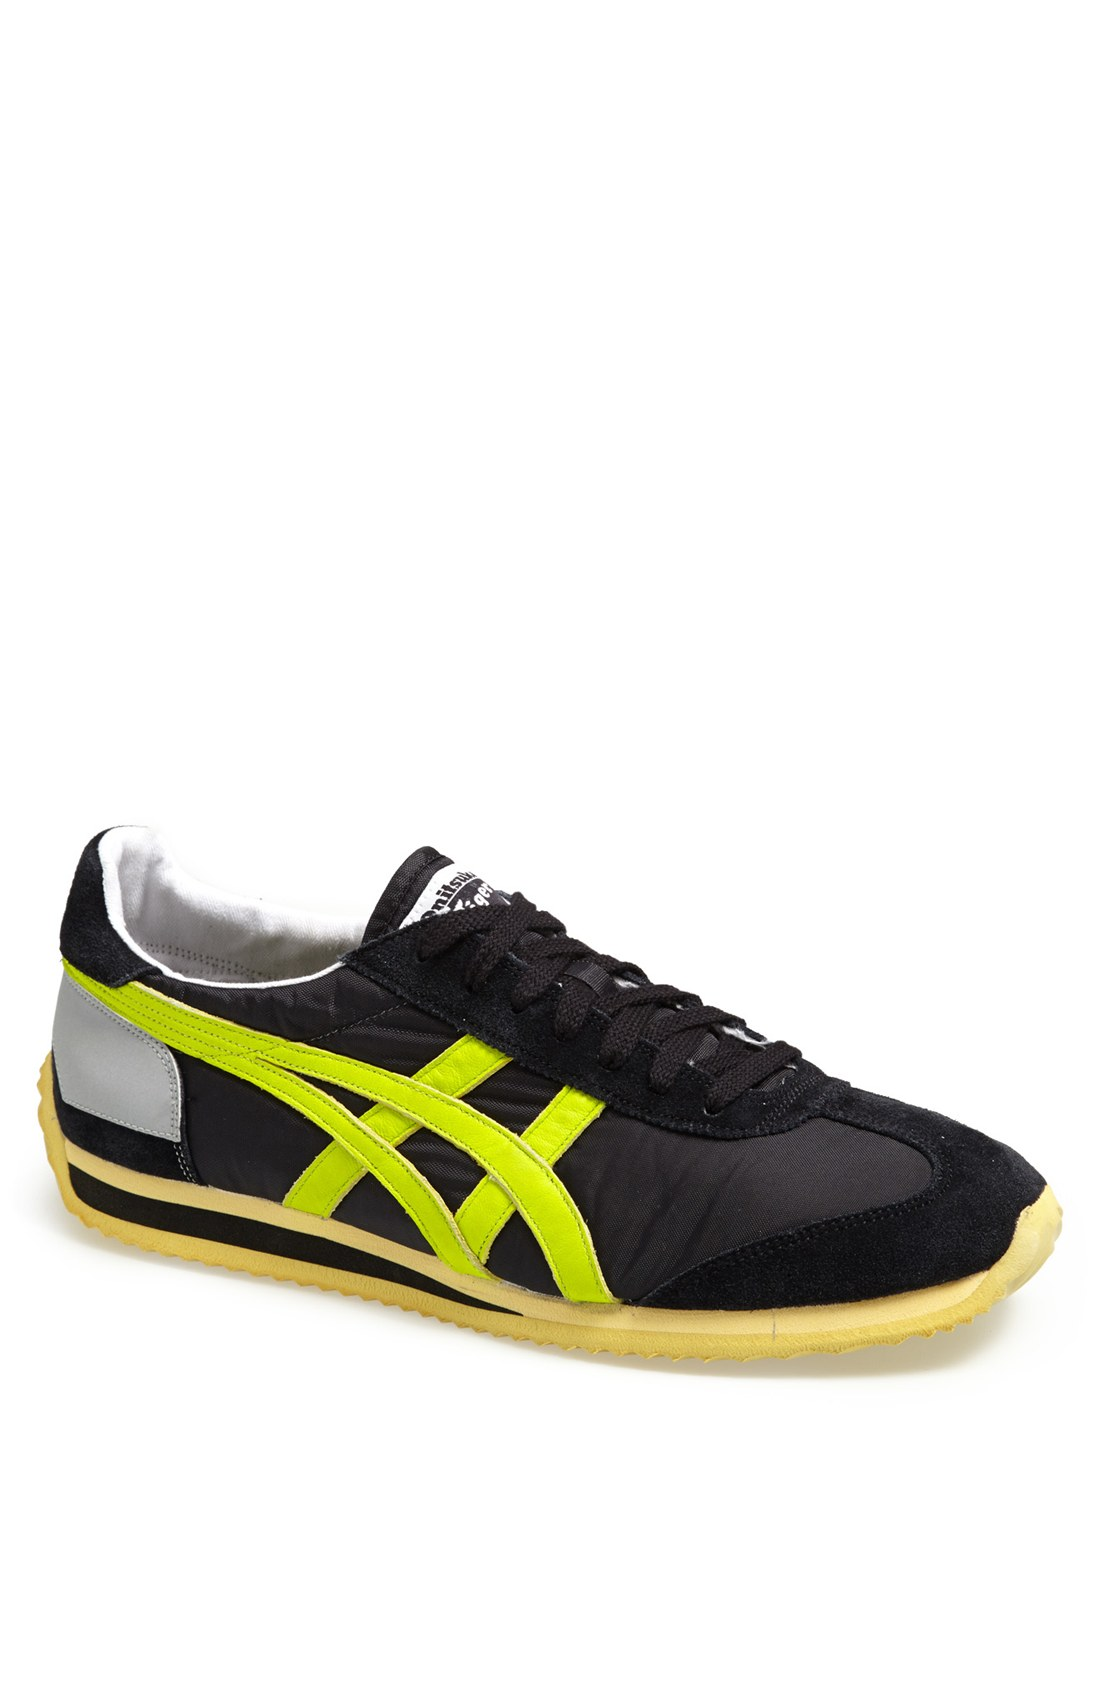 onitsuka tiger california 78 vintage athletic shoe in